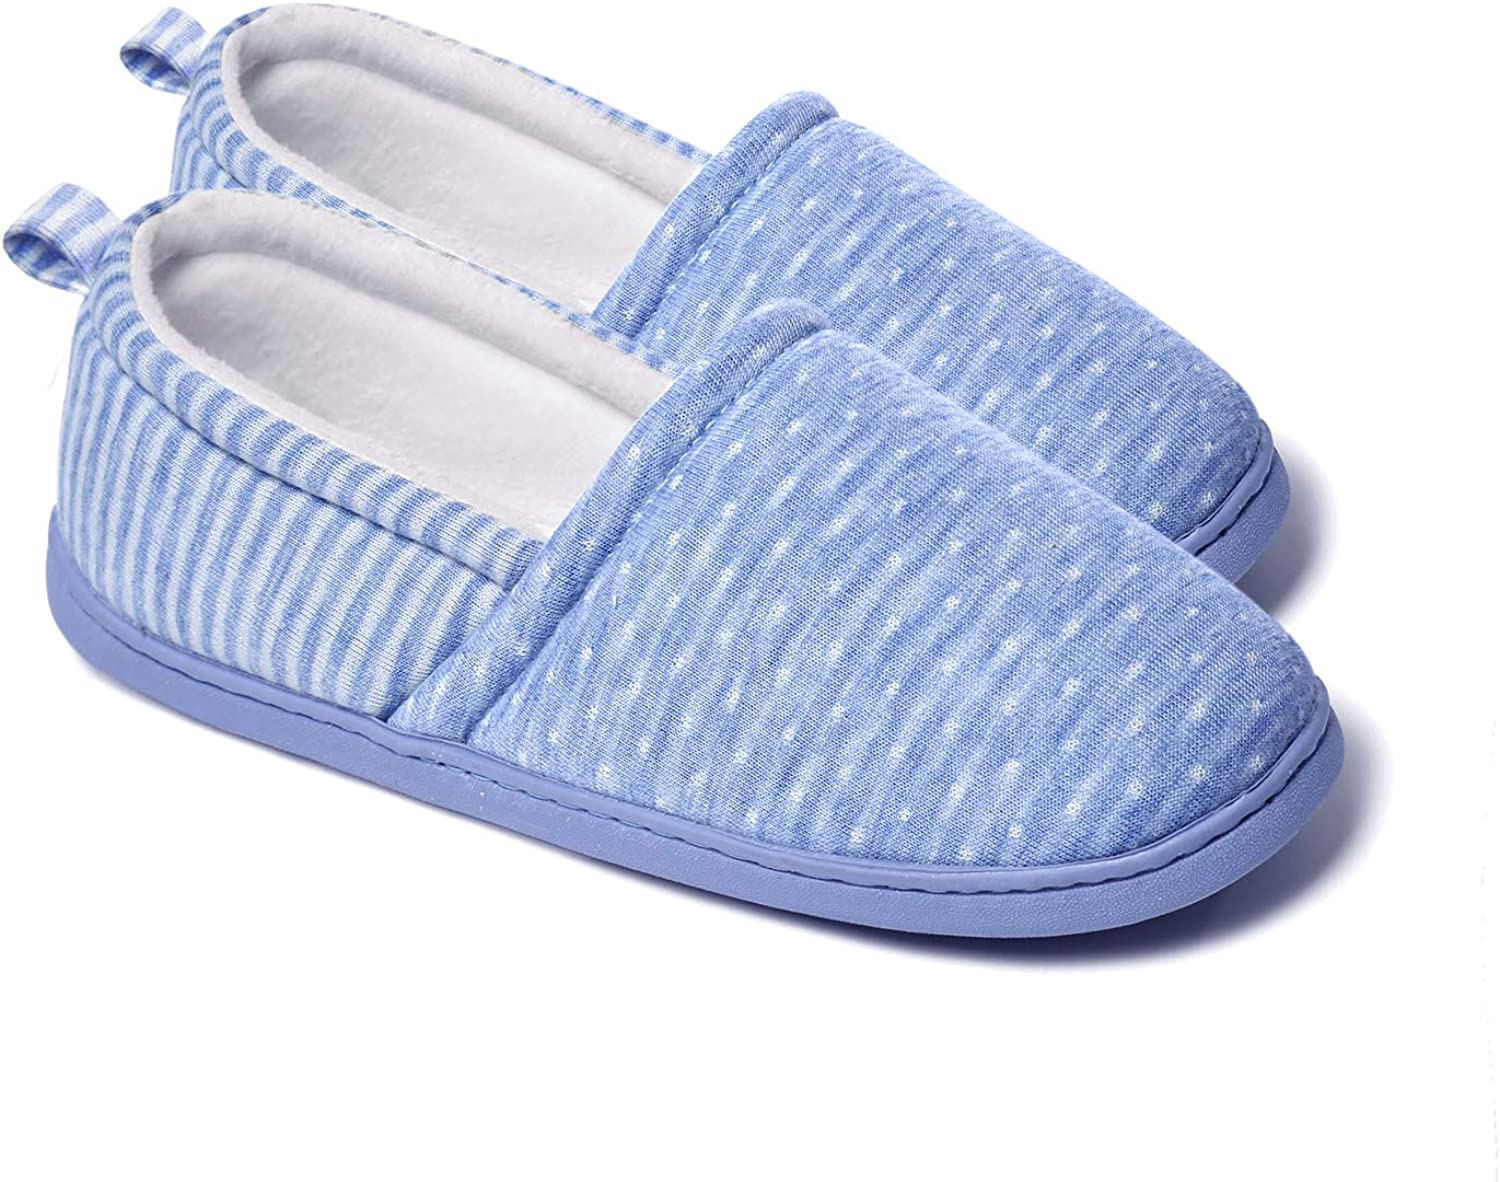 ChicNChic Women Comfortable Anti-Slip Home Slippers Soft Sole Indoor Outdoor House Shoes